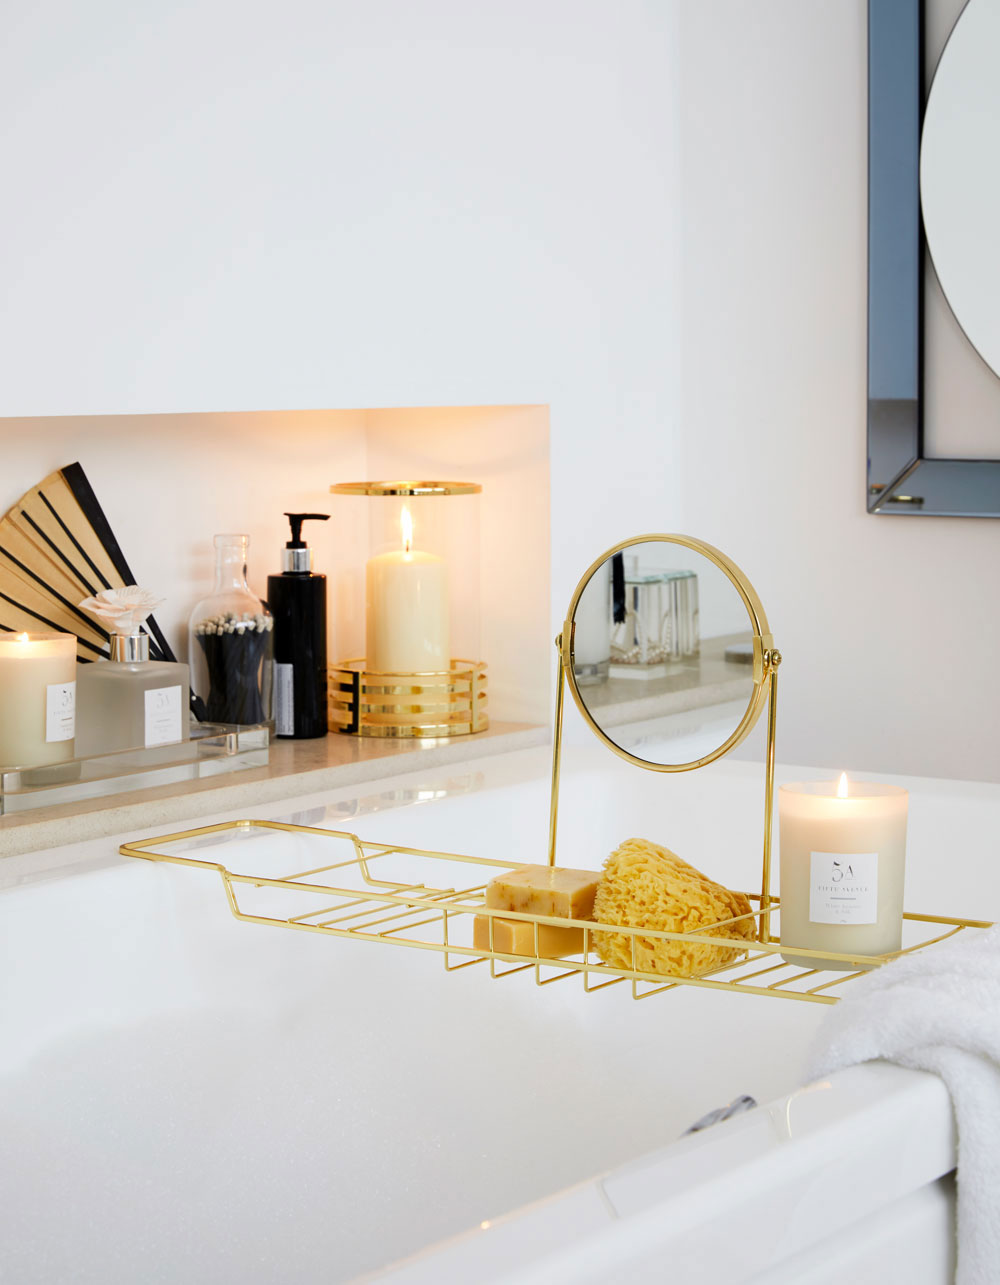 Today I'm sharing stylish storage solutions and ideas for small bathrooms, whether you